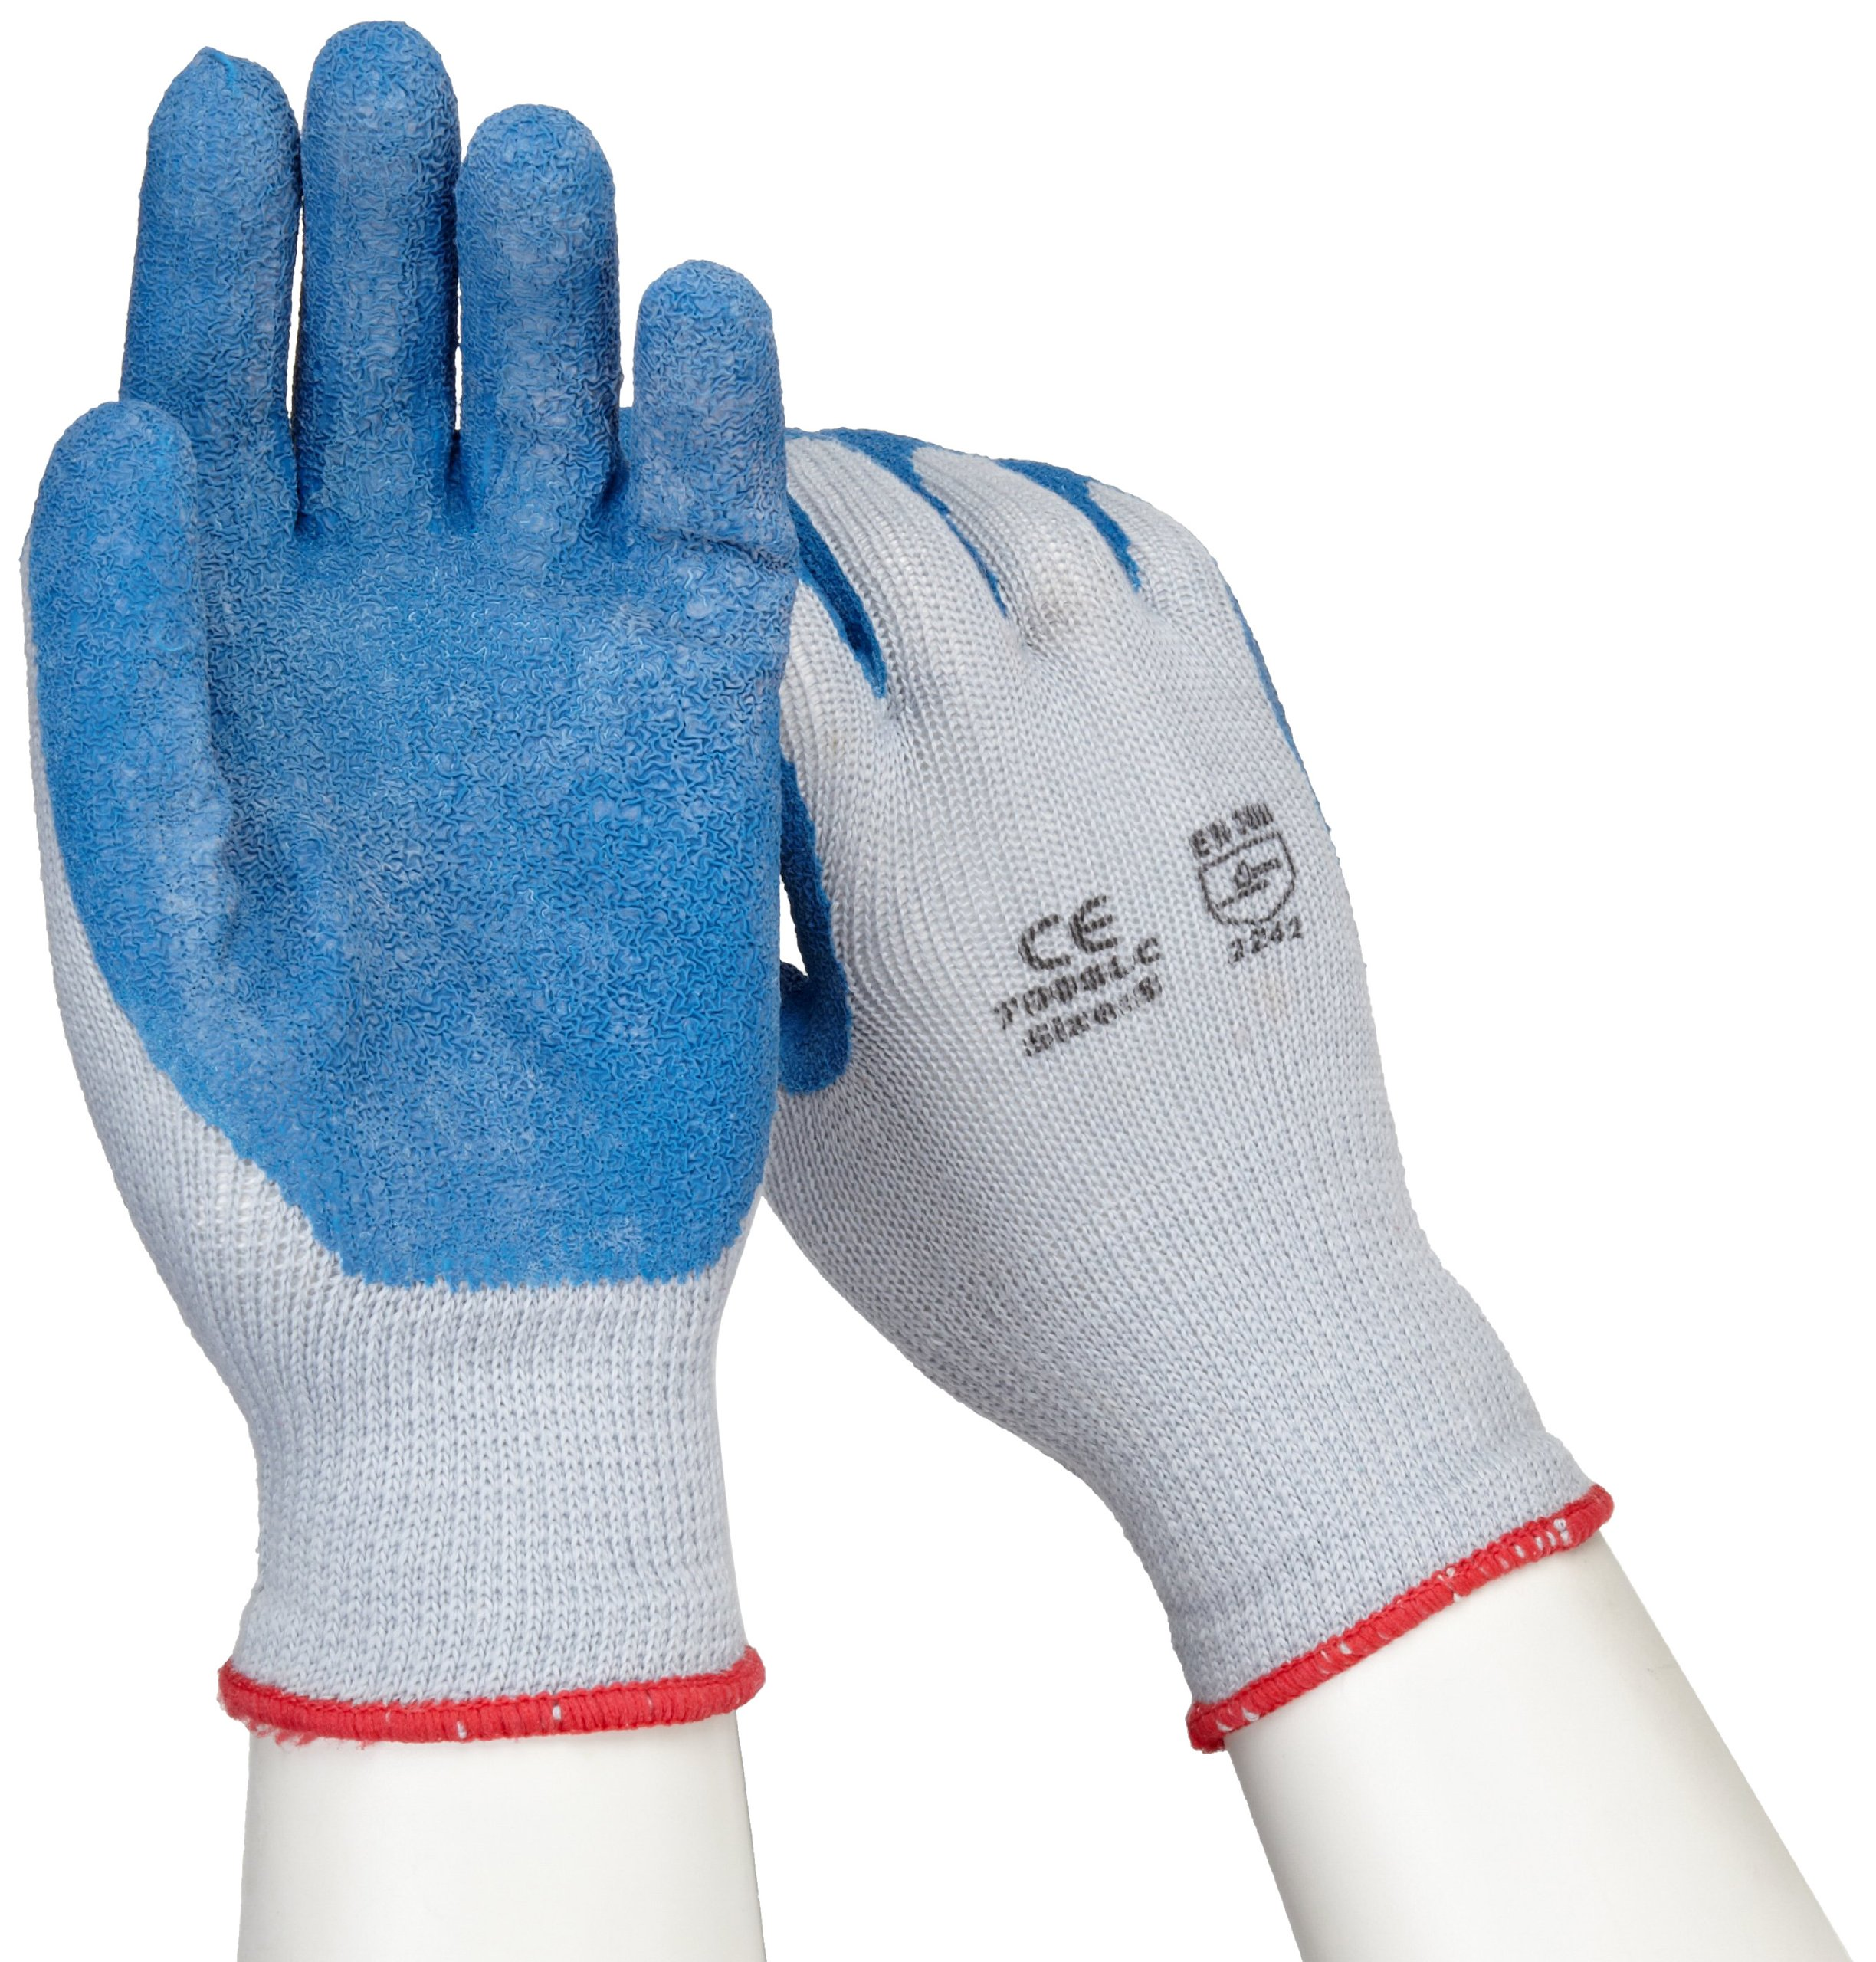 West Chester 700SLC Cotton Polyester Gloves-Small, Blue/Gray, 10 Gauge Knit Shell and Heavy Latex